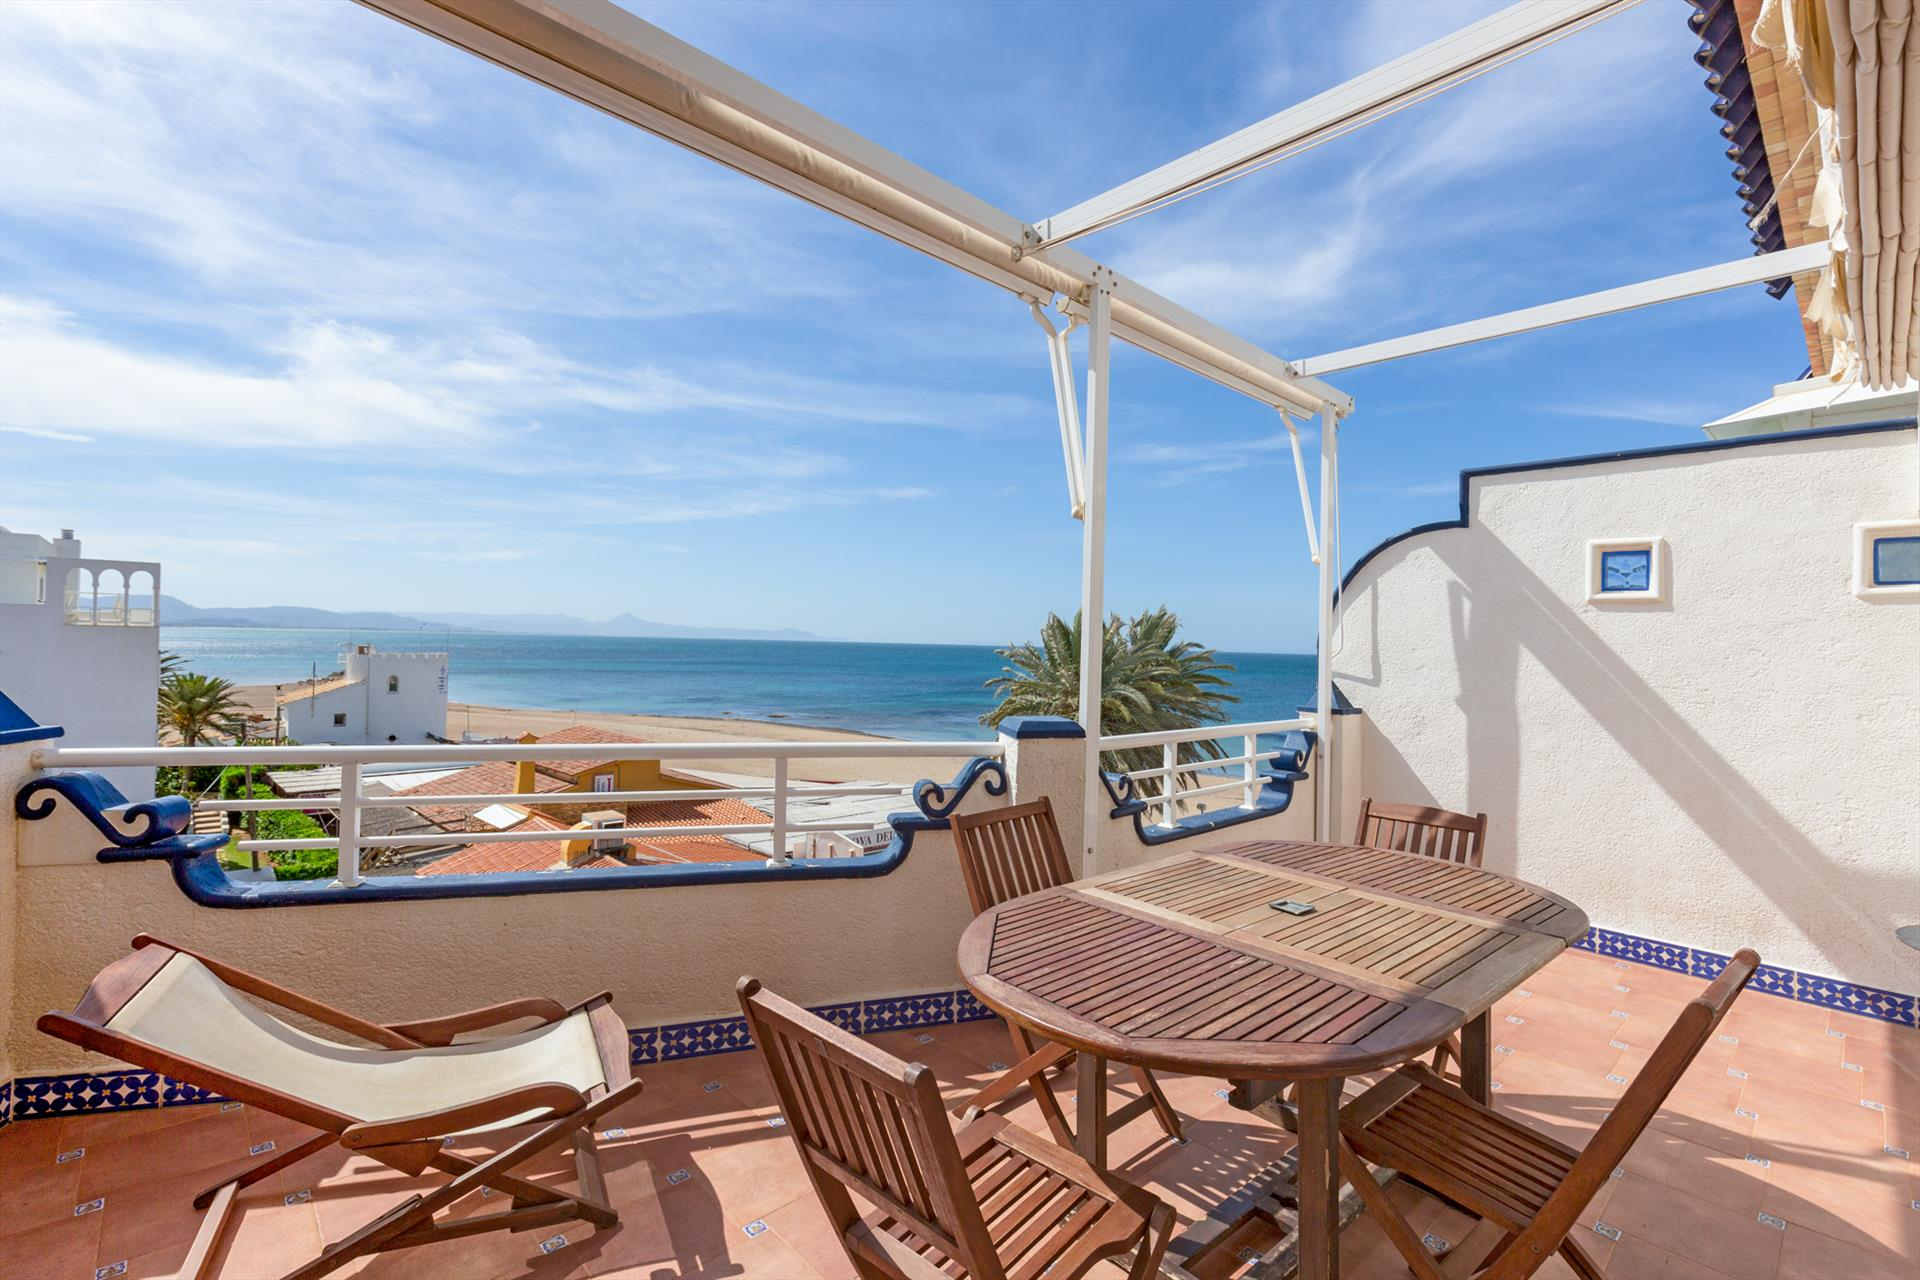 AT2201  Atico Mar Roja Medina Molins, Wonderful and cheerful holiday house in Denia, on the Costa Blanca, Spain  with communal pool for 6 persons.....